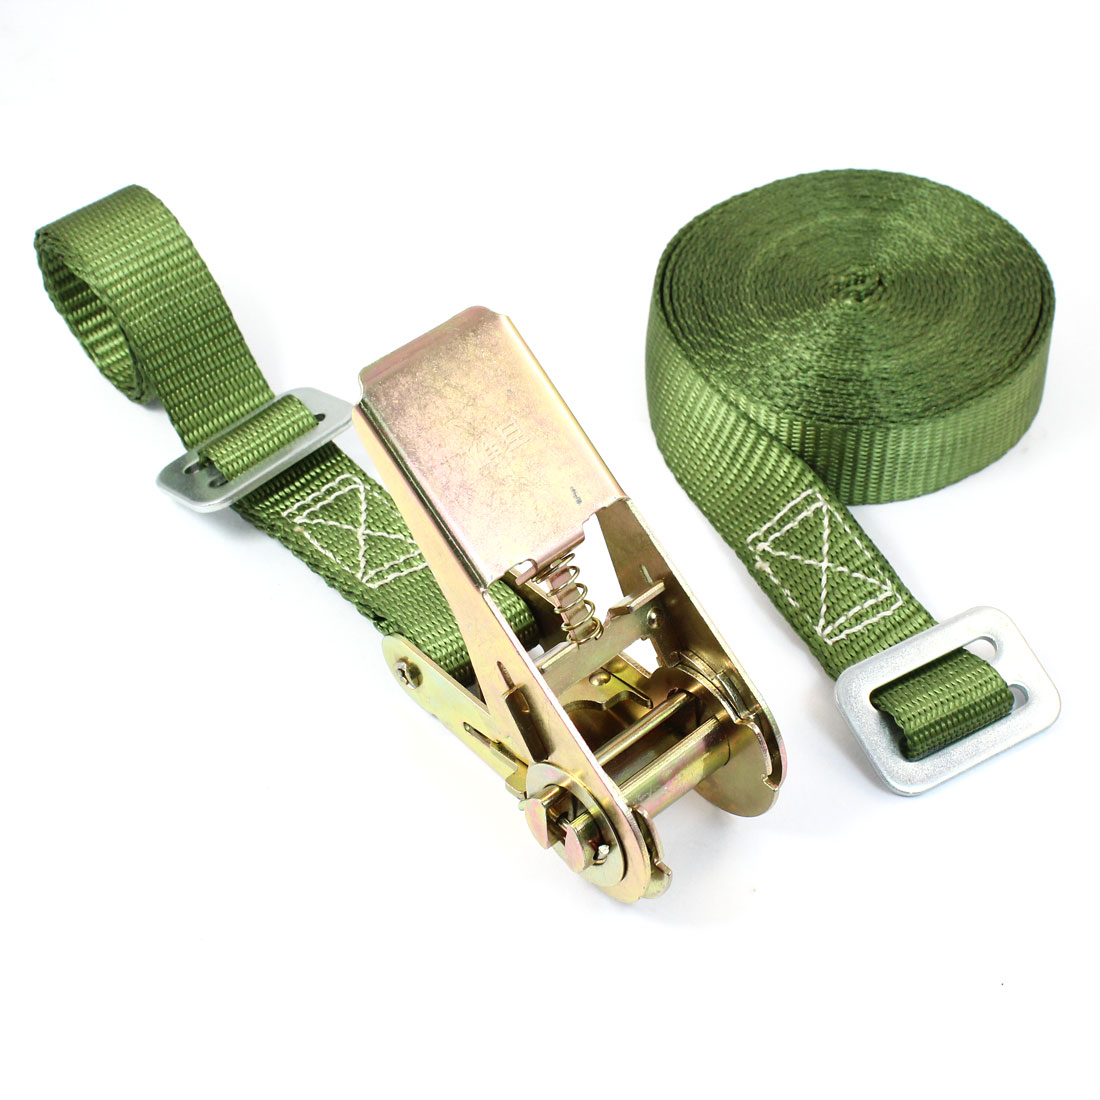 Travel Luggage Binding Adjustable Metal Ratchet Tie Down Strap 5M 16ft Green